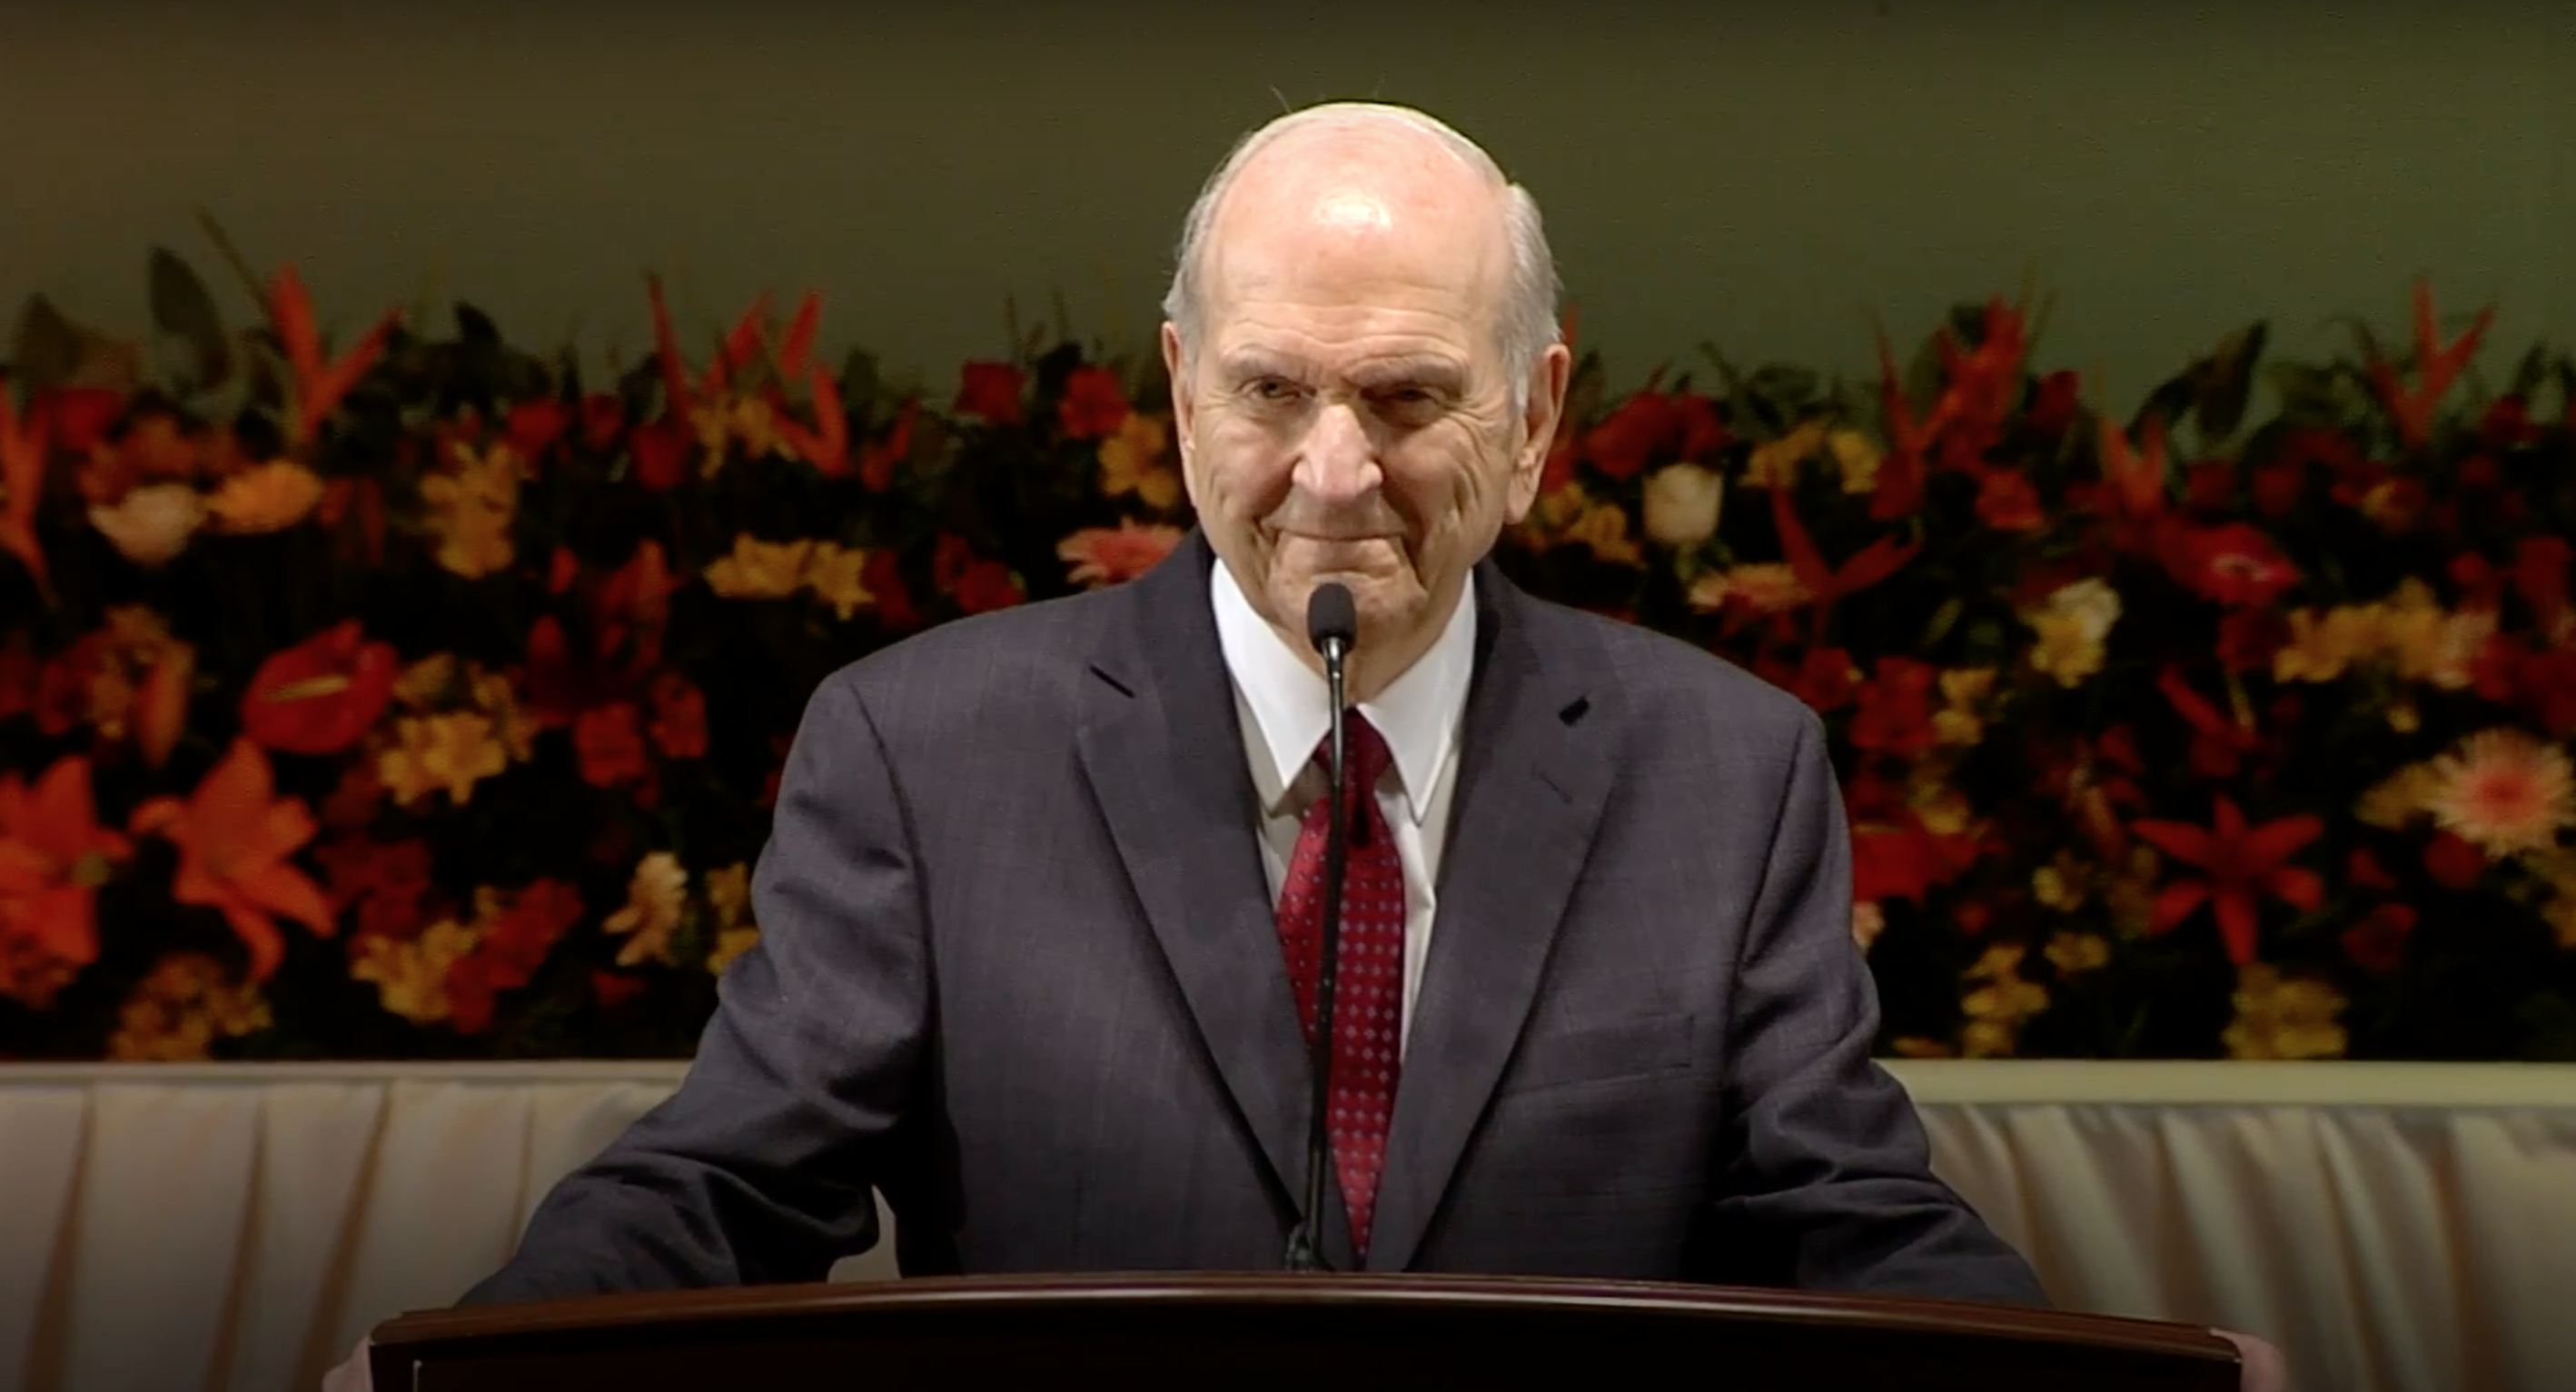 President Nelson speaks to Latter-day Saints in Peru during a devotional